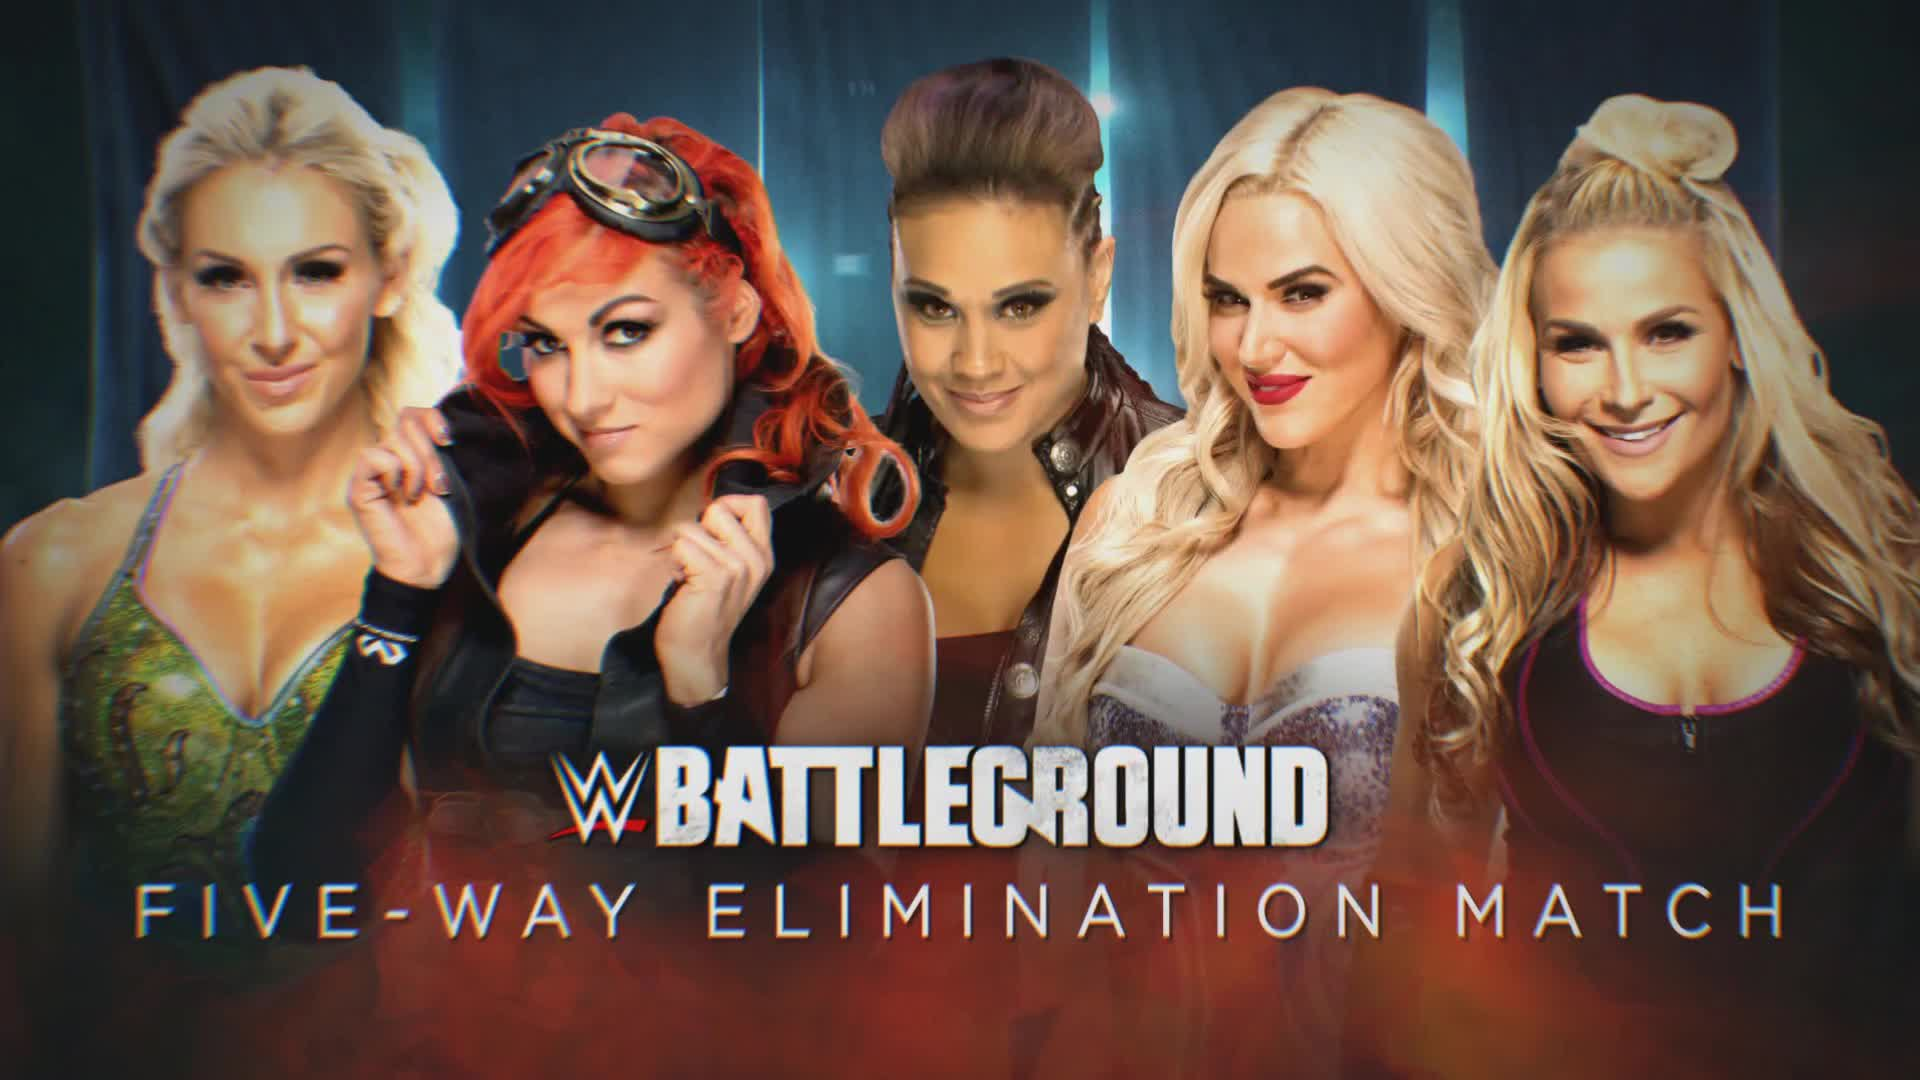 Image result for Charlotte Flair vs. Becky Lynch vs. Natalya vs. Tamina vs. Lana (Five-Way Elimination Match to determine Naomi's opponent at SummerSlam) battleground